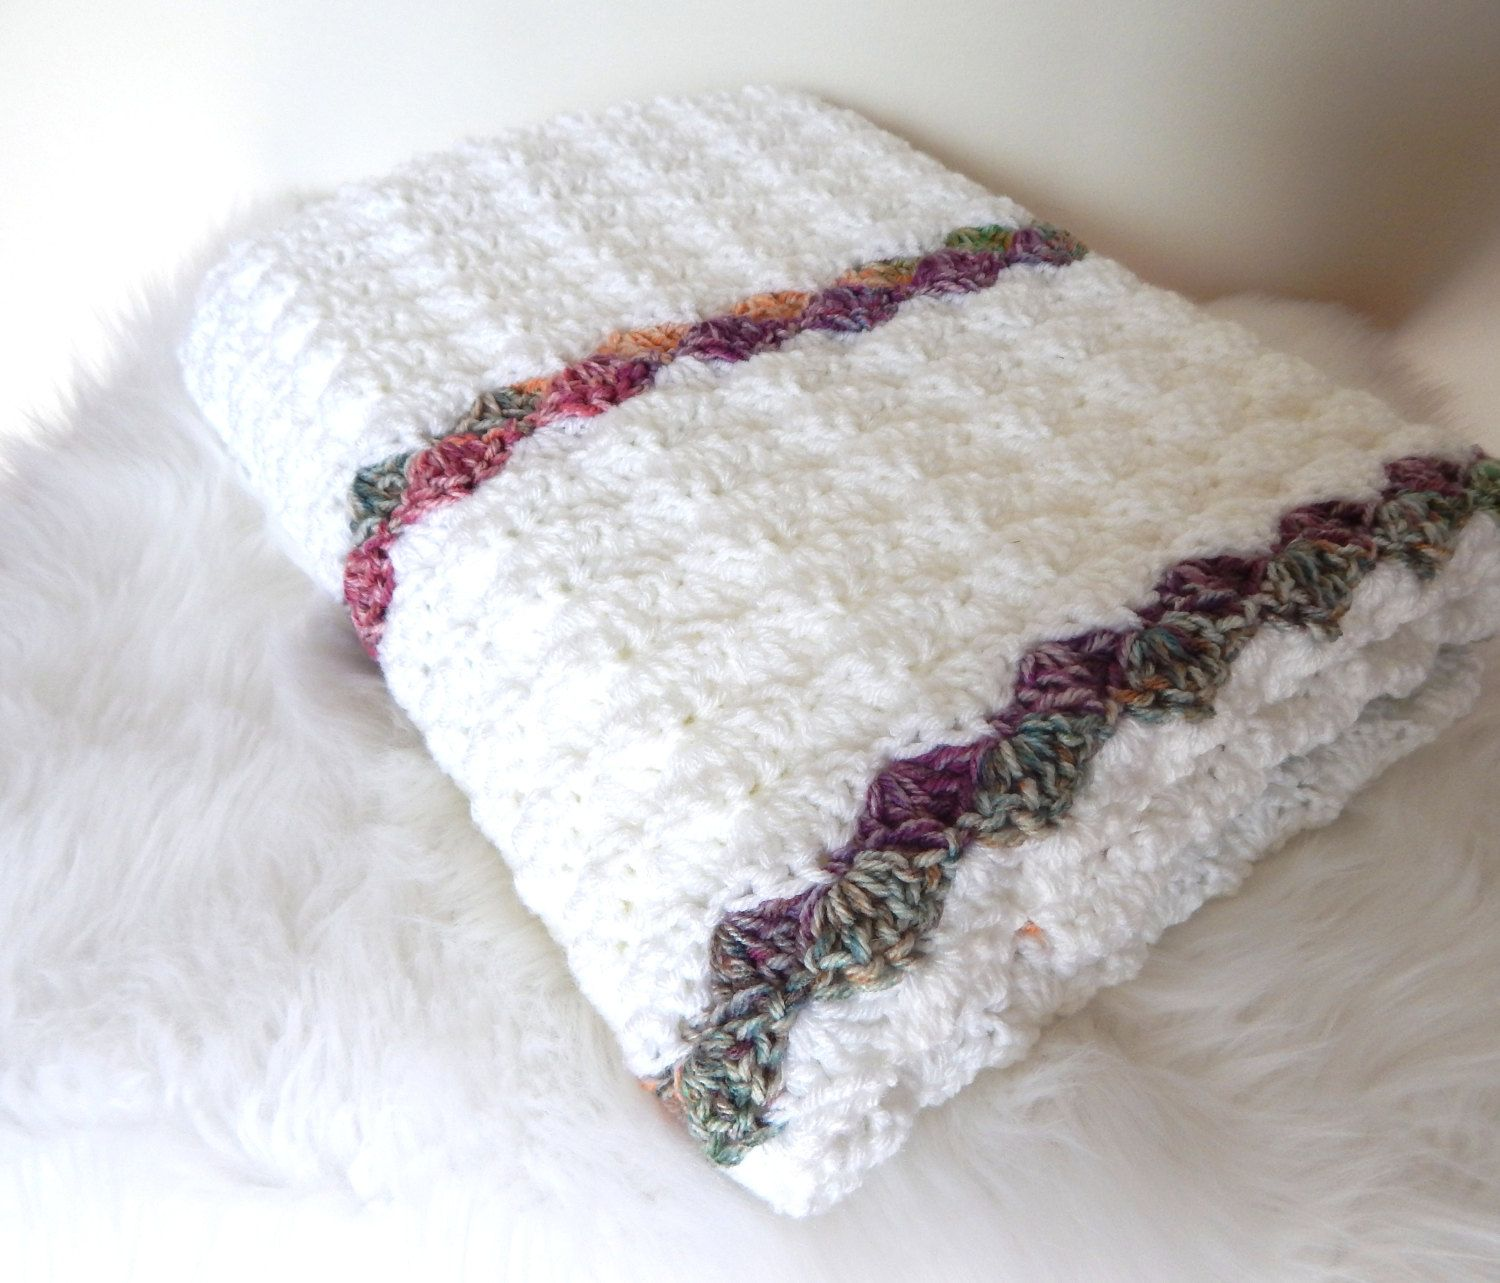 Knit Crochet Throw Blanket - Chunky Afghan Blanket - Home Decor Throw - Striped Blanket Throw - White and Variegated Ready to Ship by CdCkDesign on Etsy